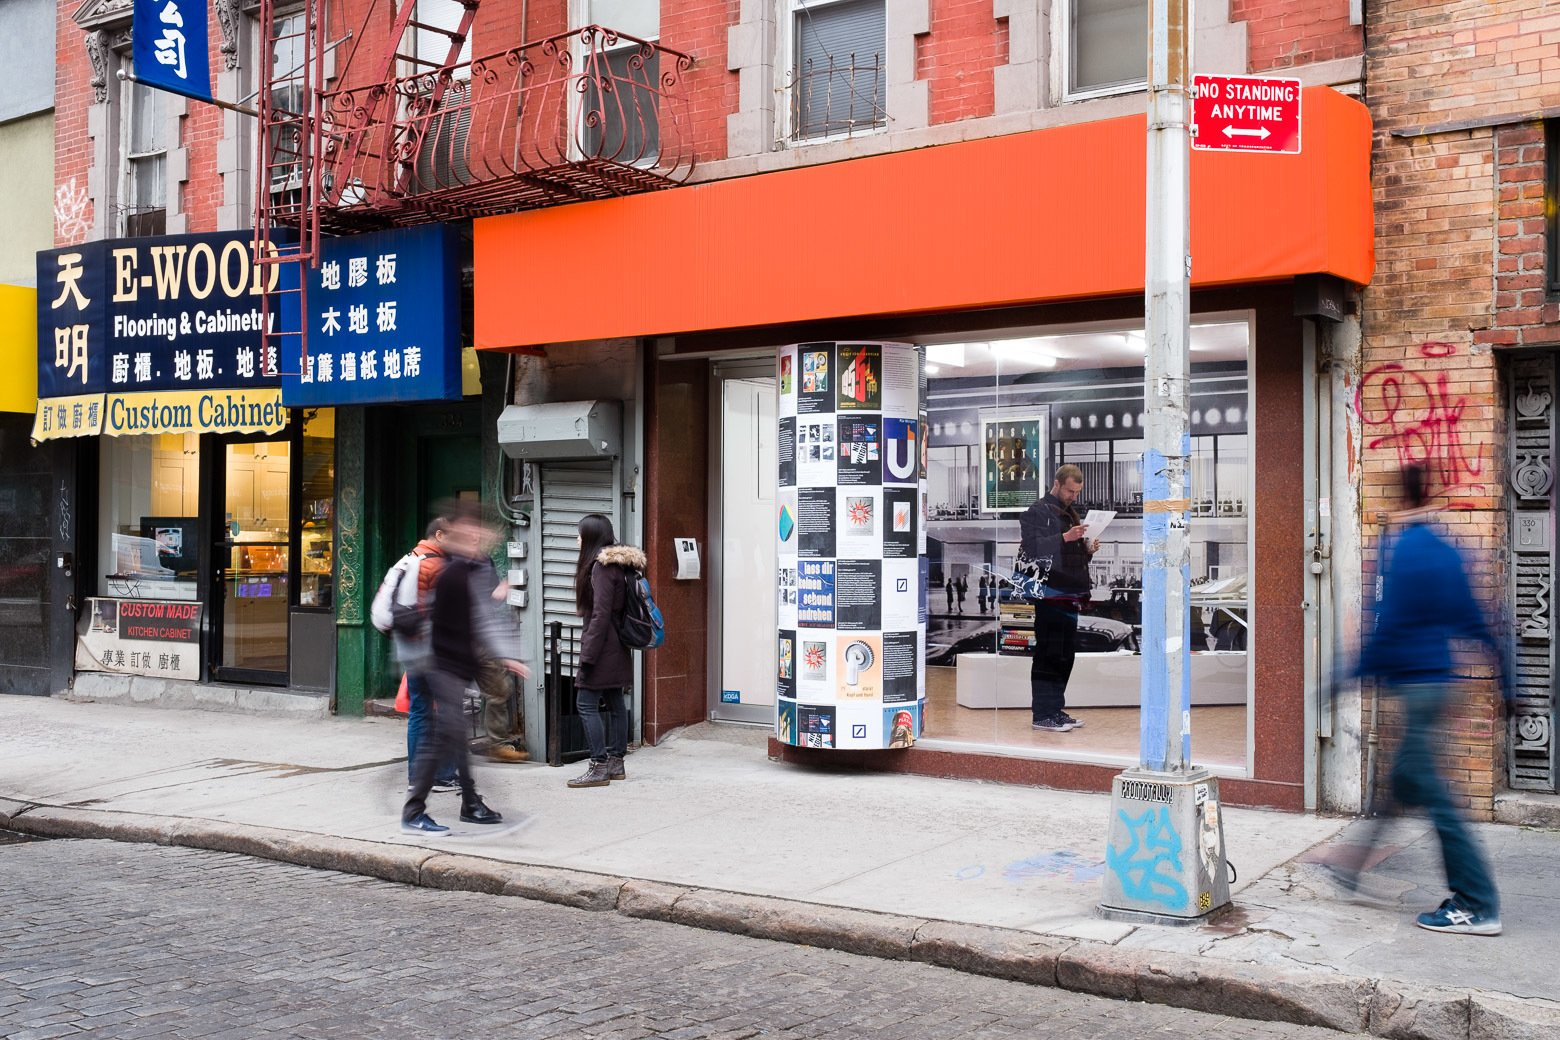 """As part of the exhibition display, Krishnamurthy installed a large poster column that protrudes from the gallery's storefront facade. """"Klaus Wittkugel believed in the street as a primary context for graphic design: a large portion of his work consisted of posters, meant to catch your eye while walking. As P! is in Chinatown and has a very public presence, I decided to extend this gesture and make it a key feature of the exhibition,"""" he says. """"In Berlin, you still see a lot of Littfasssäulen, a distinctive and typical kind of poster column. Together with Cay Sophie Rabinowitz, curator of the parallel exhibition on Anton Stankowski at OSMOS, I conceived an installation that would display reproductions of work by the two Cold War designers together. There is also a second poster column at OSMOS, which is the 'umbilical cord' between these two otherwise independent exhibitions. The installation echoes Wittkugel's own approach to his retrospective exhibition in 1961, when he covered the poster columns in the city with a selection of his past work, along with the posters announcing the show. Artist Maayan Strauss had the brilliant idea of making the poster column 'break out; of the gallery, so that it seems to literally cross over a border. Wittkugel's first job was as a window-dresser, so it's an appropriate homage to have this kind of attention paid to the storefront window.""""  Photo 6 of 6 in A Look at Klaus Wittkugel, East Germany's Most Prolific Graphic Designer"""